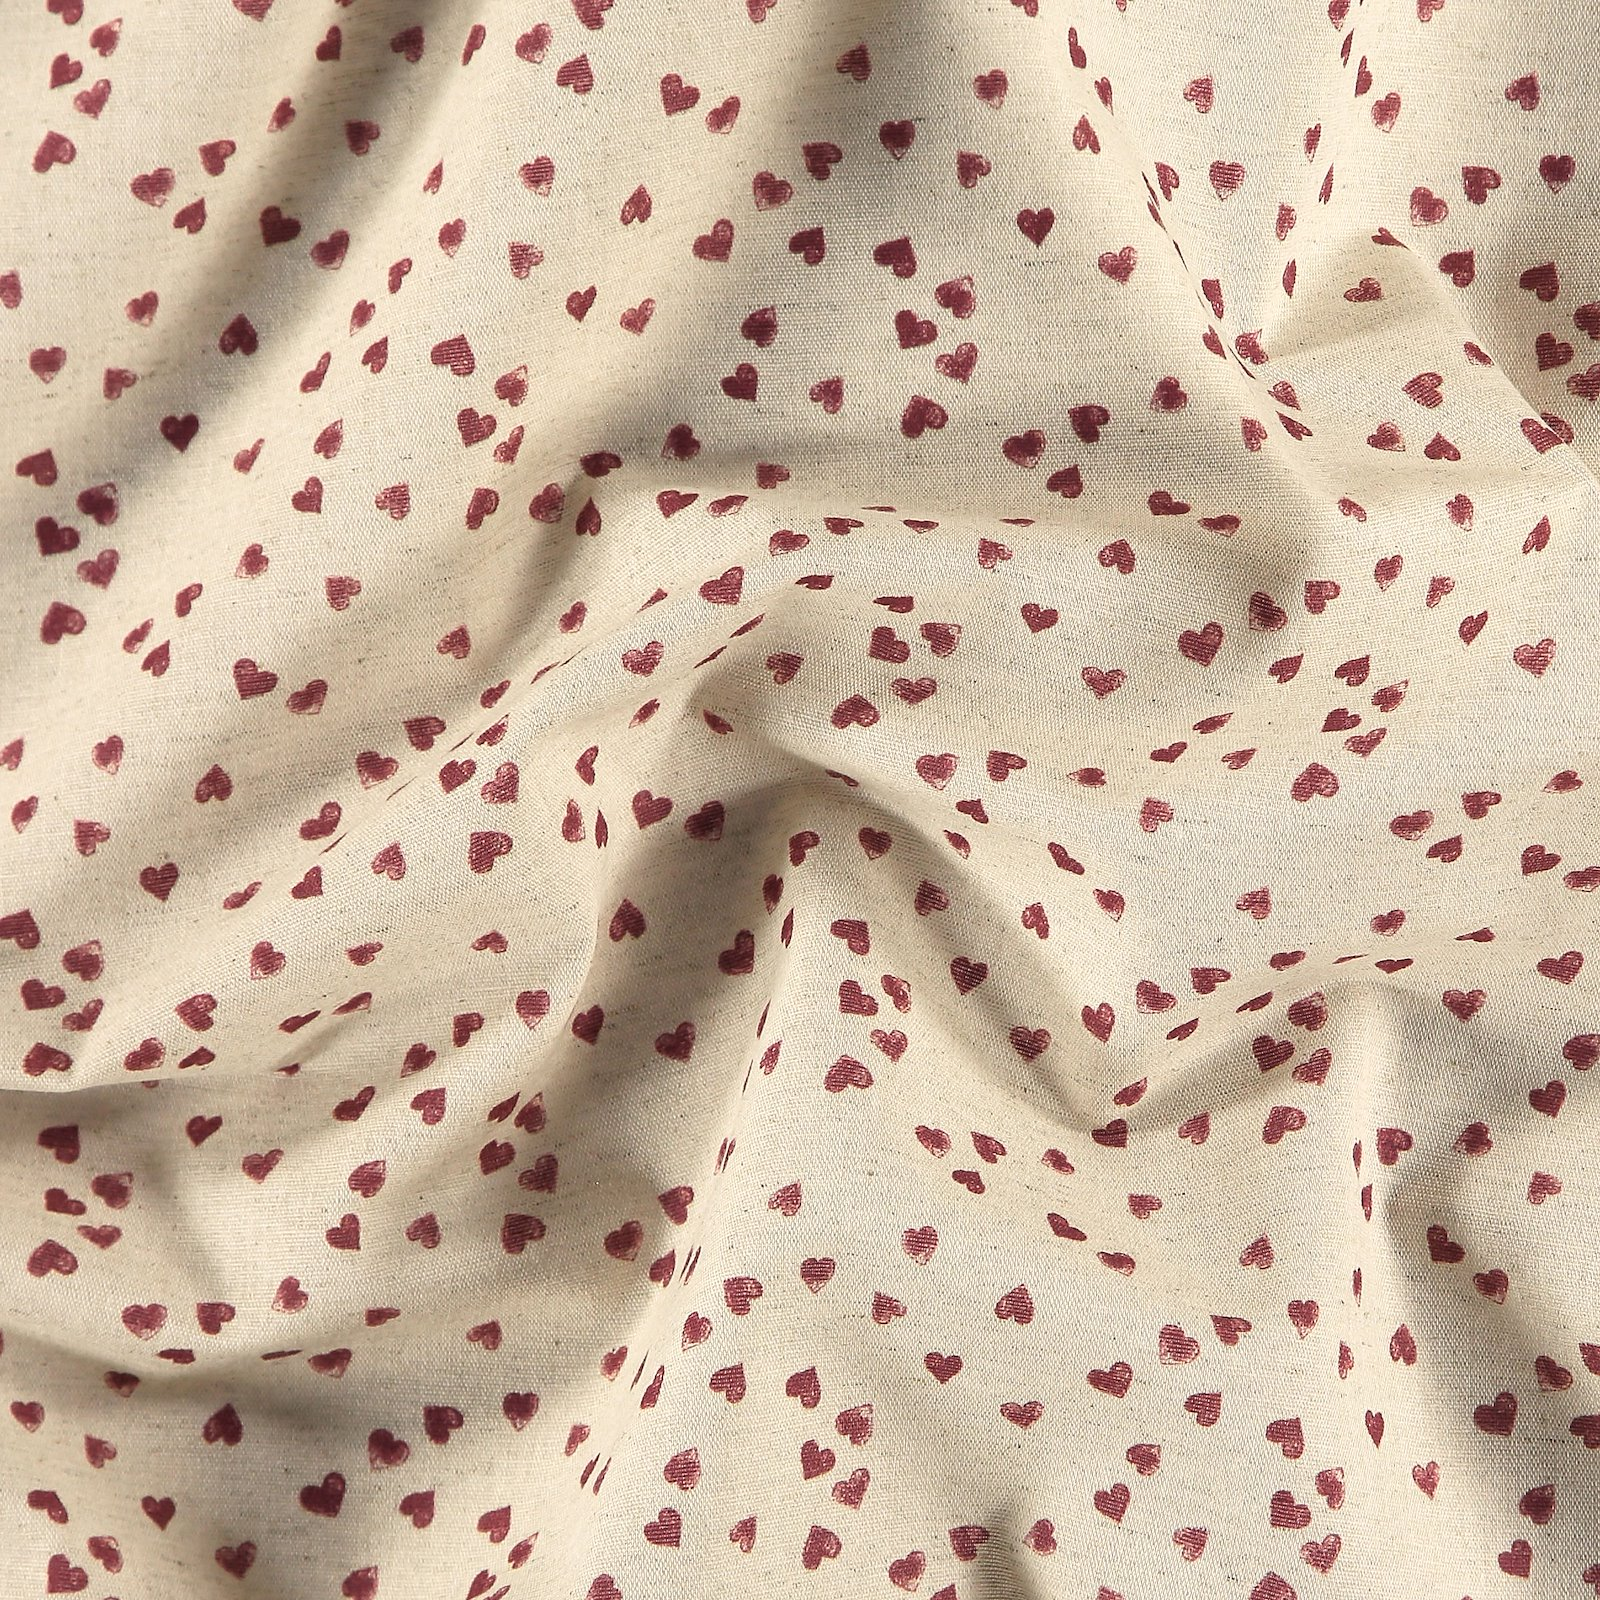 Woven cotton/linen with red hearts 780557_pack